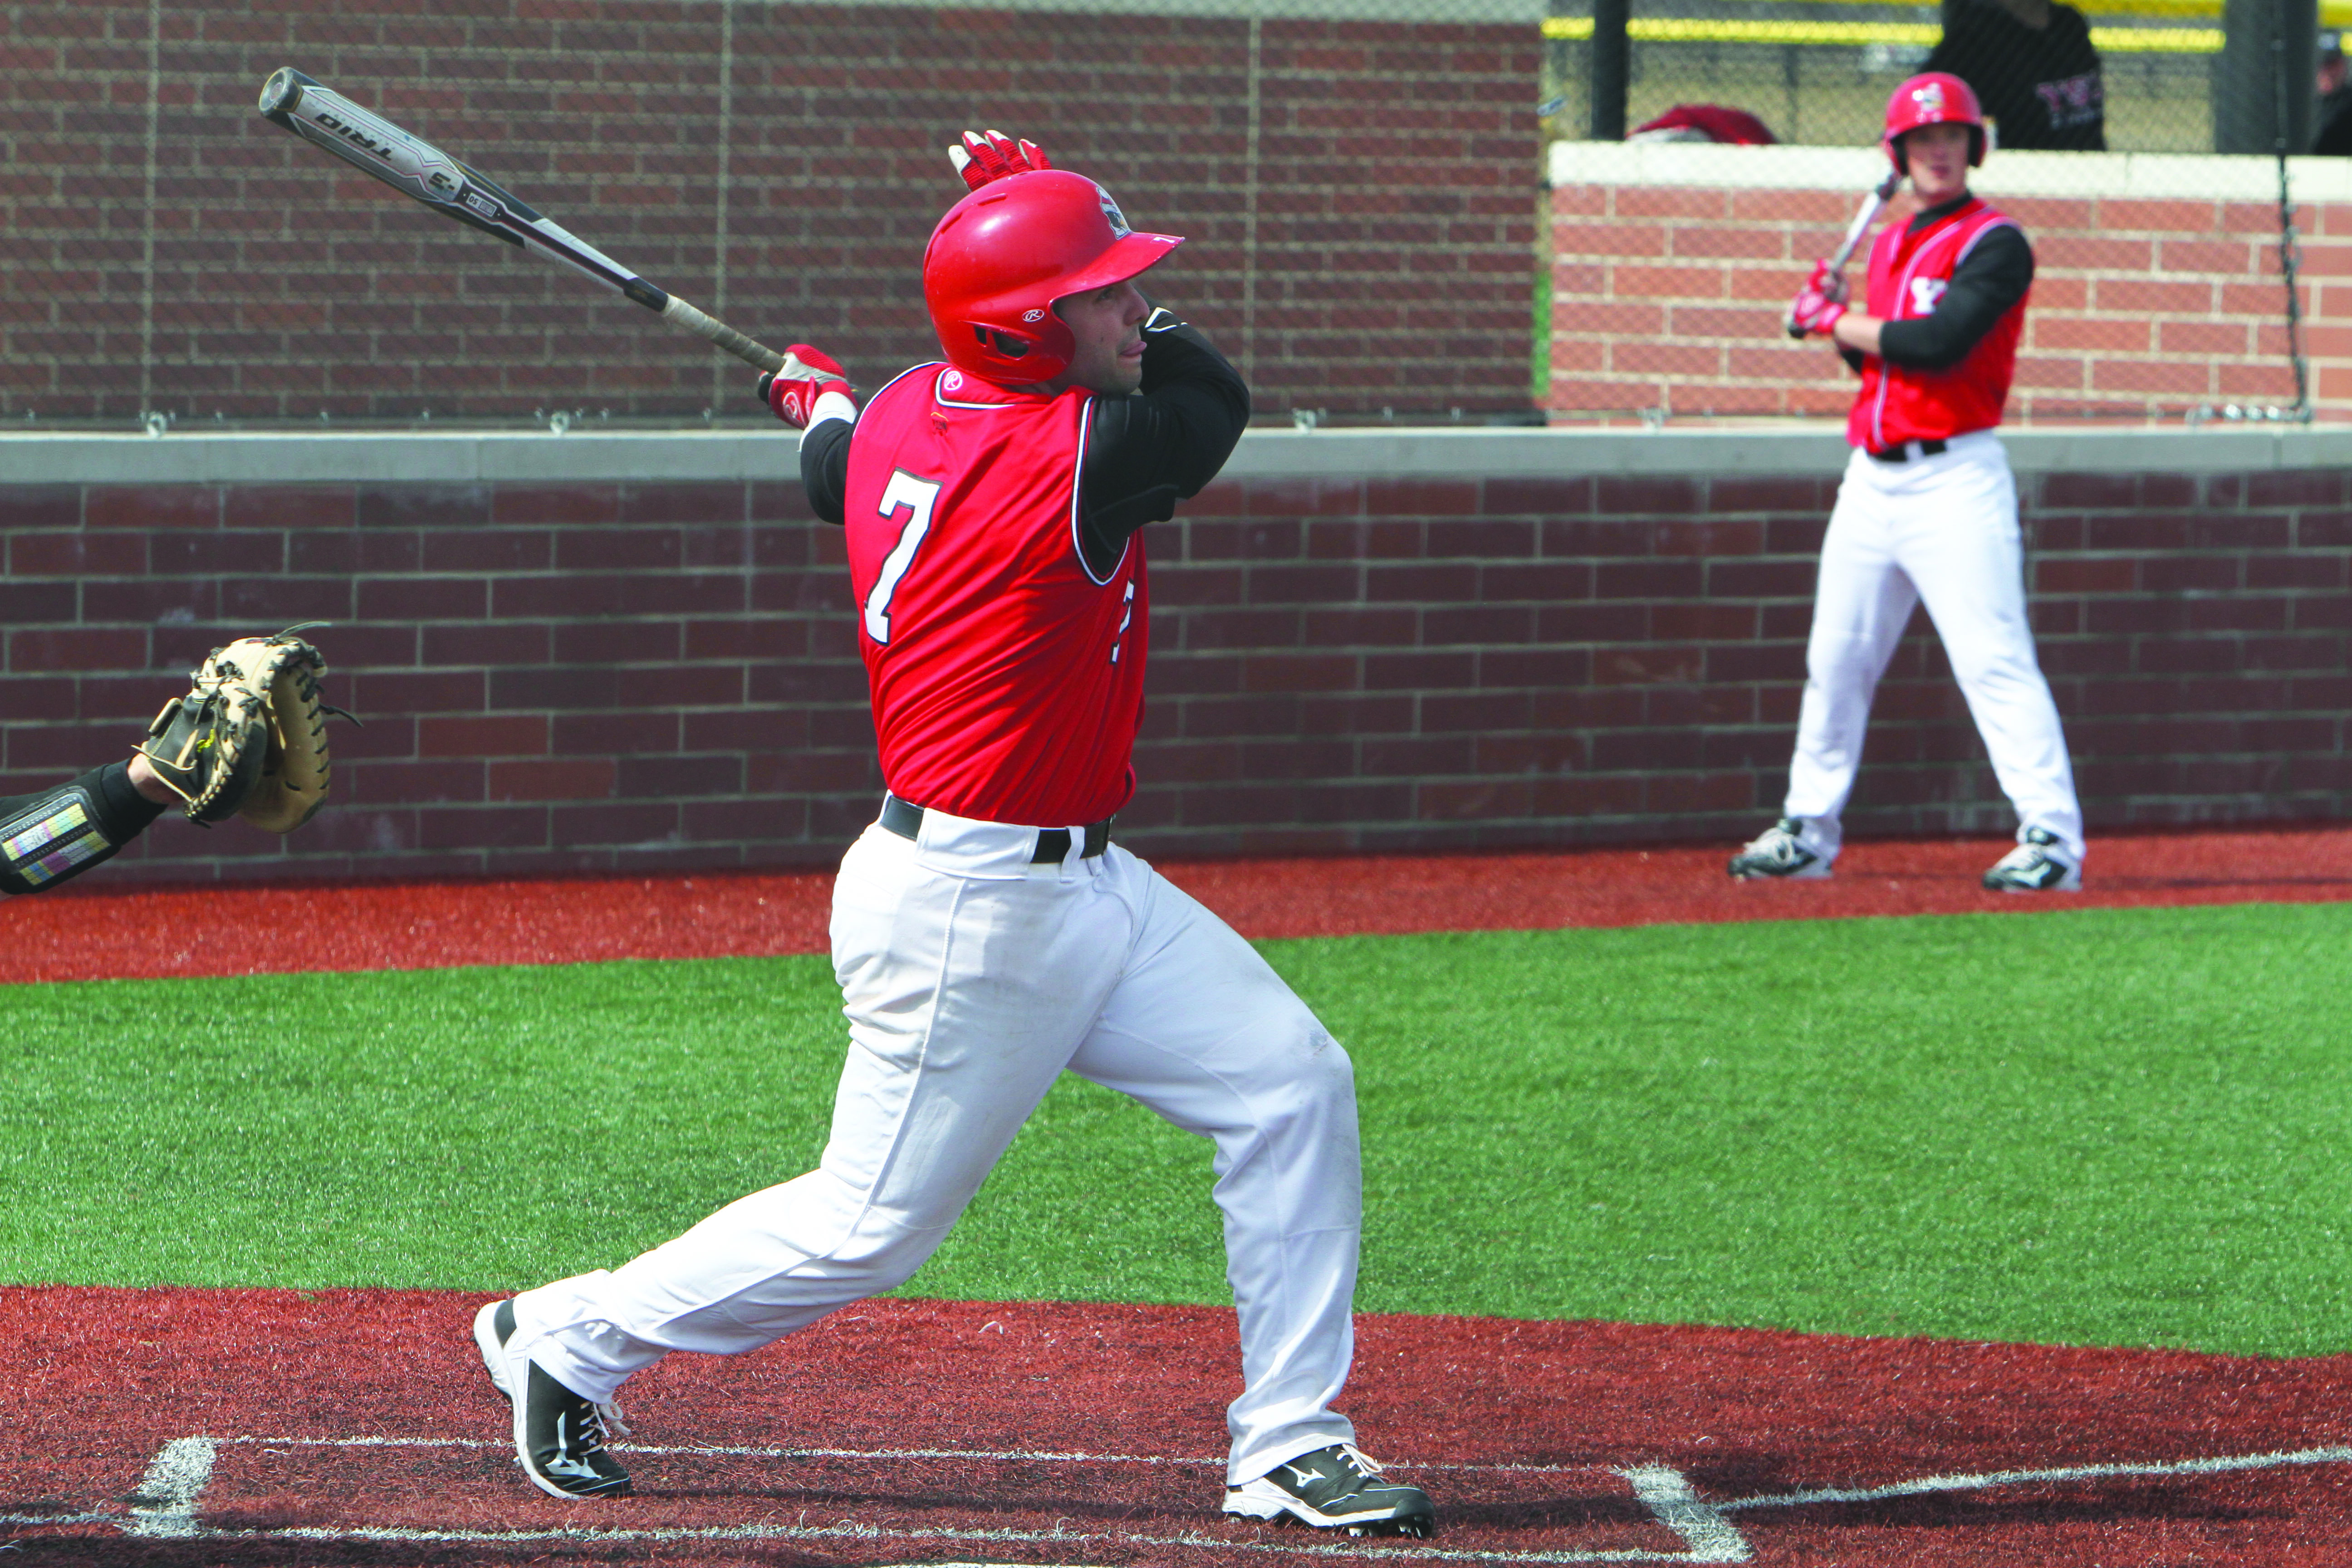 Youngstown State University shortstop Shane Willoughby (7) drove in a career-high three RBIs against Bowling Green State University. Willoughby's double in the bottom of the second inning gave the Penguins a 2-1 lead. Photo courtesy of YSU Sports Information.